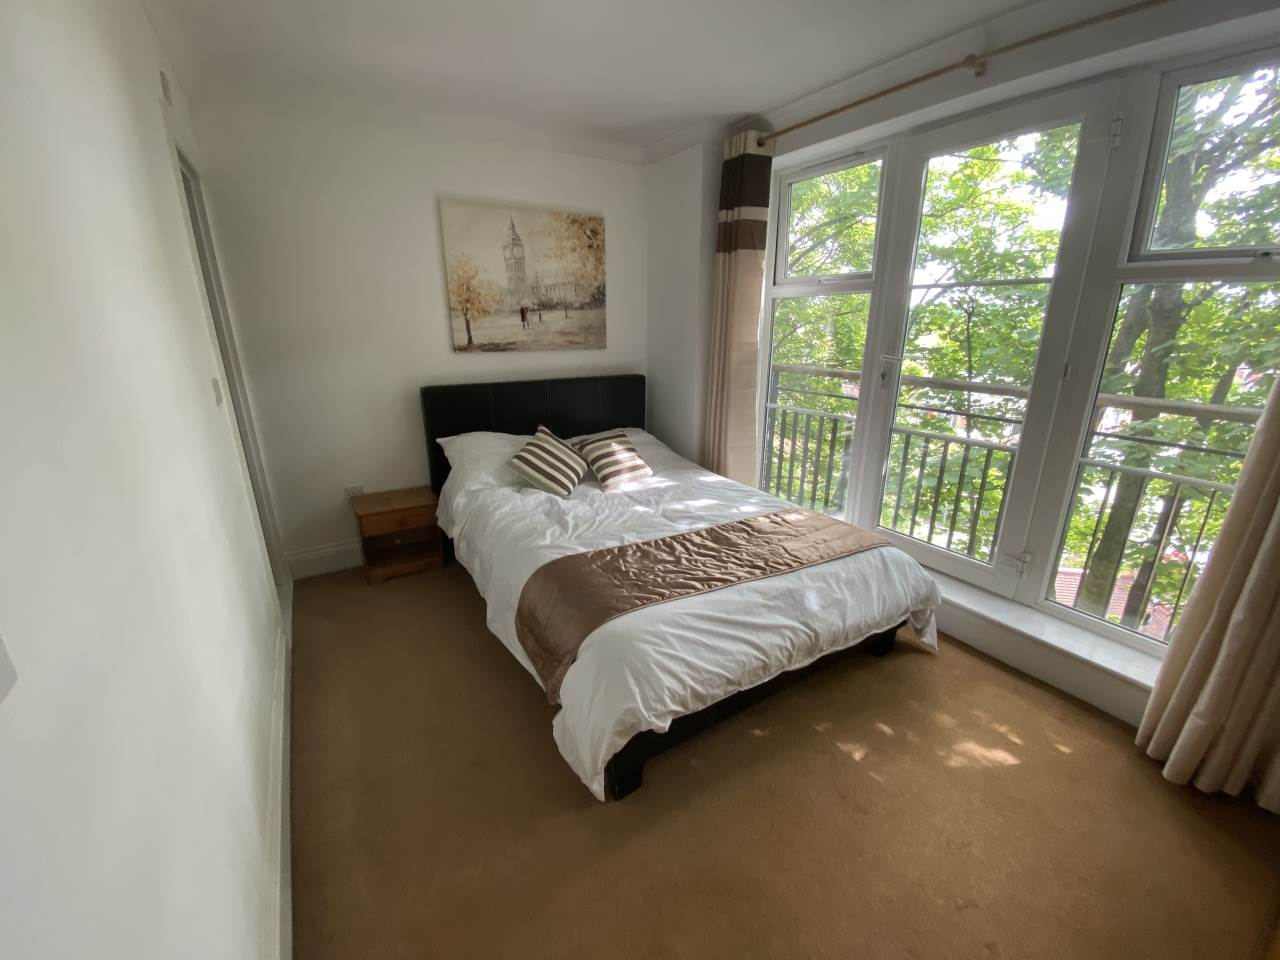 1 bed house / flat share to rent - Property Image 1